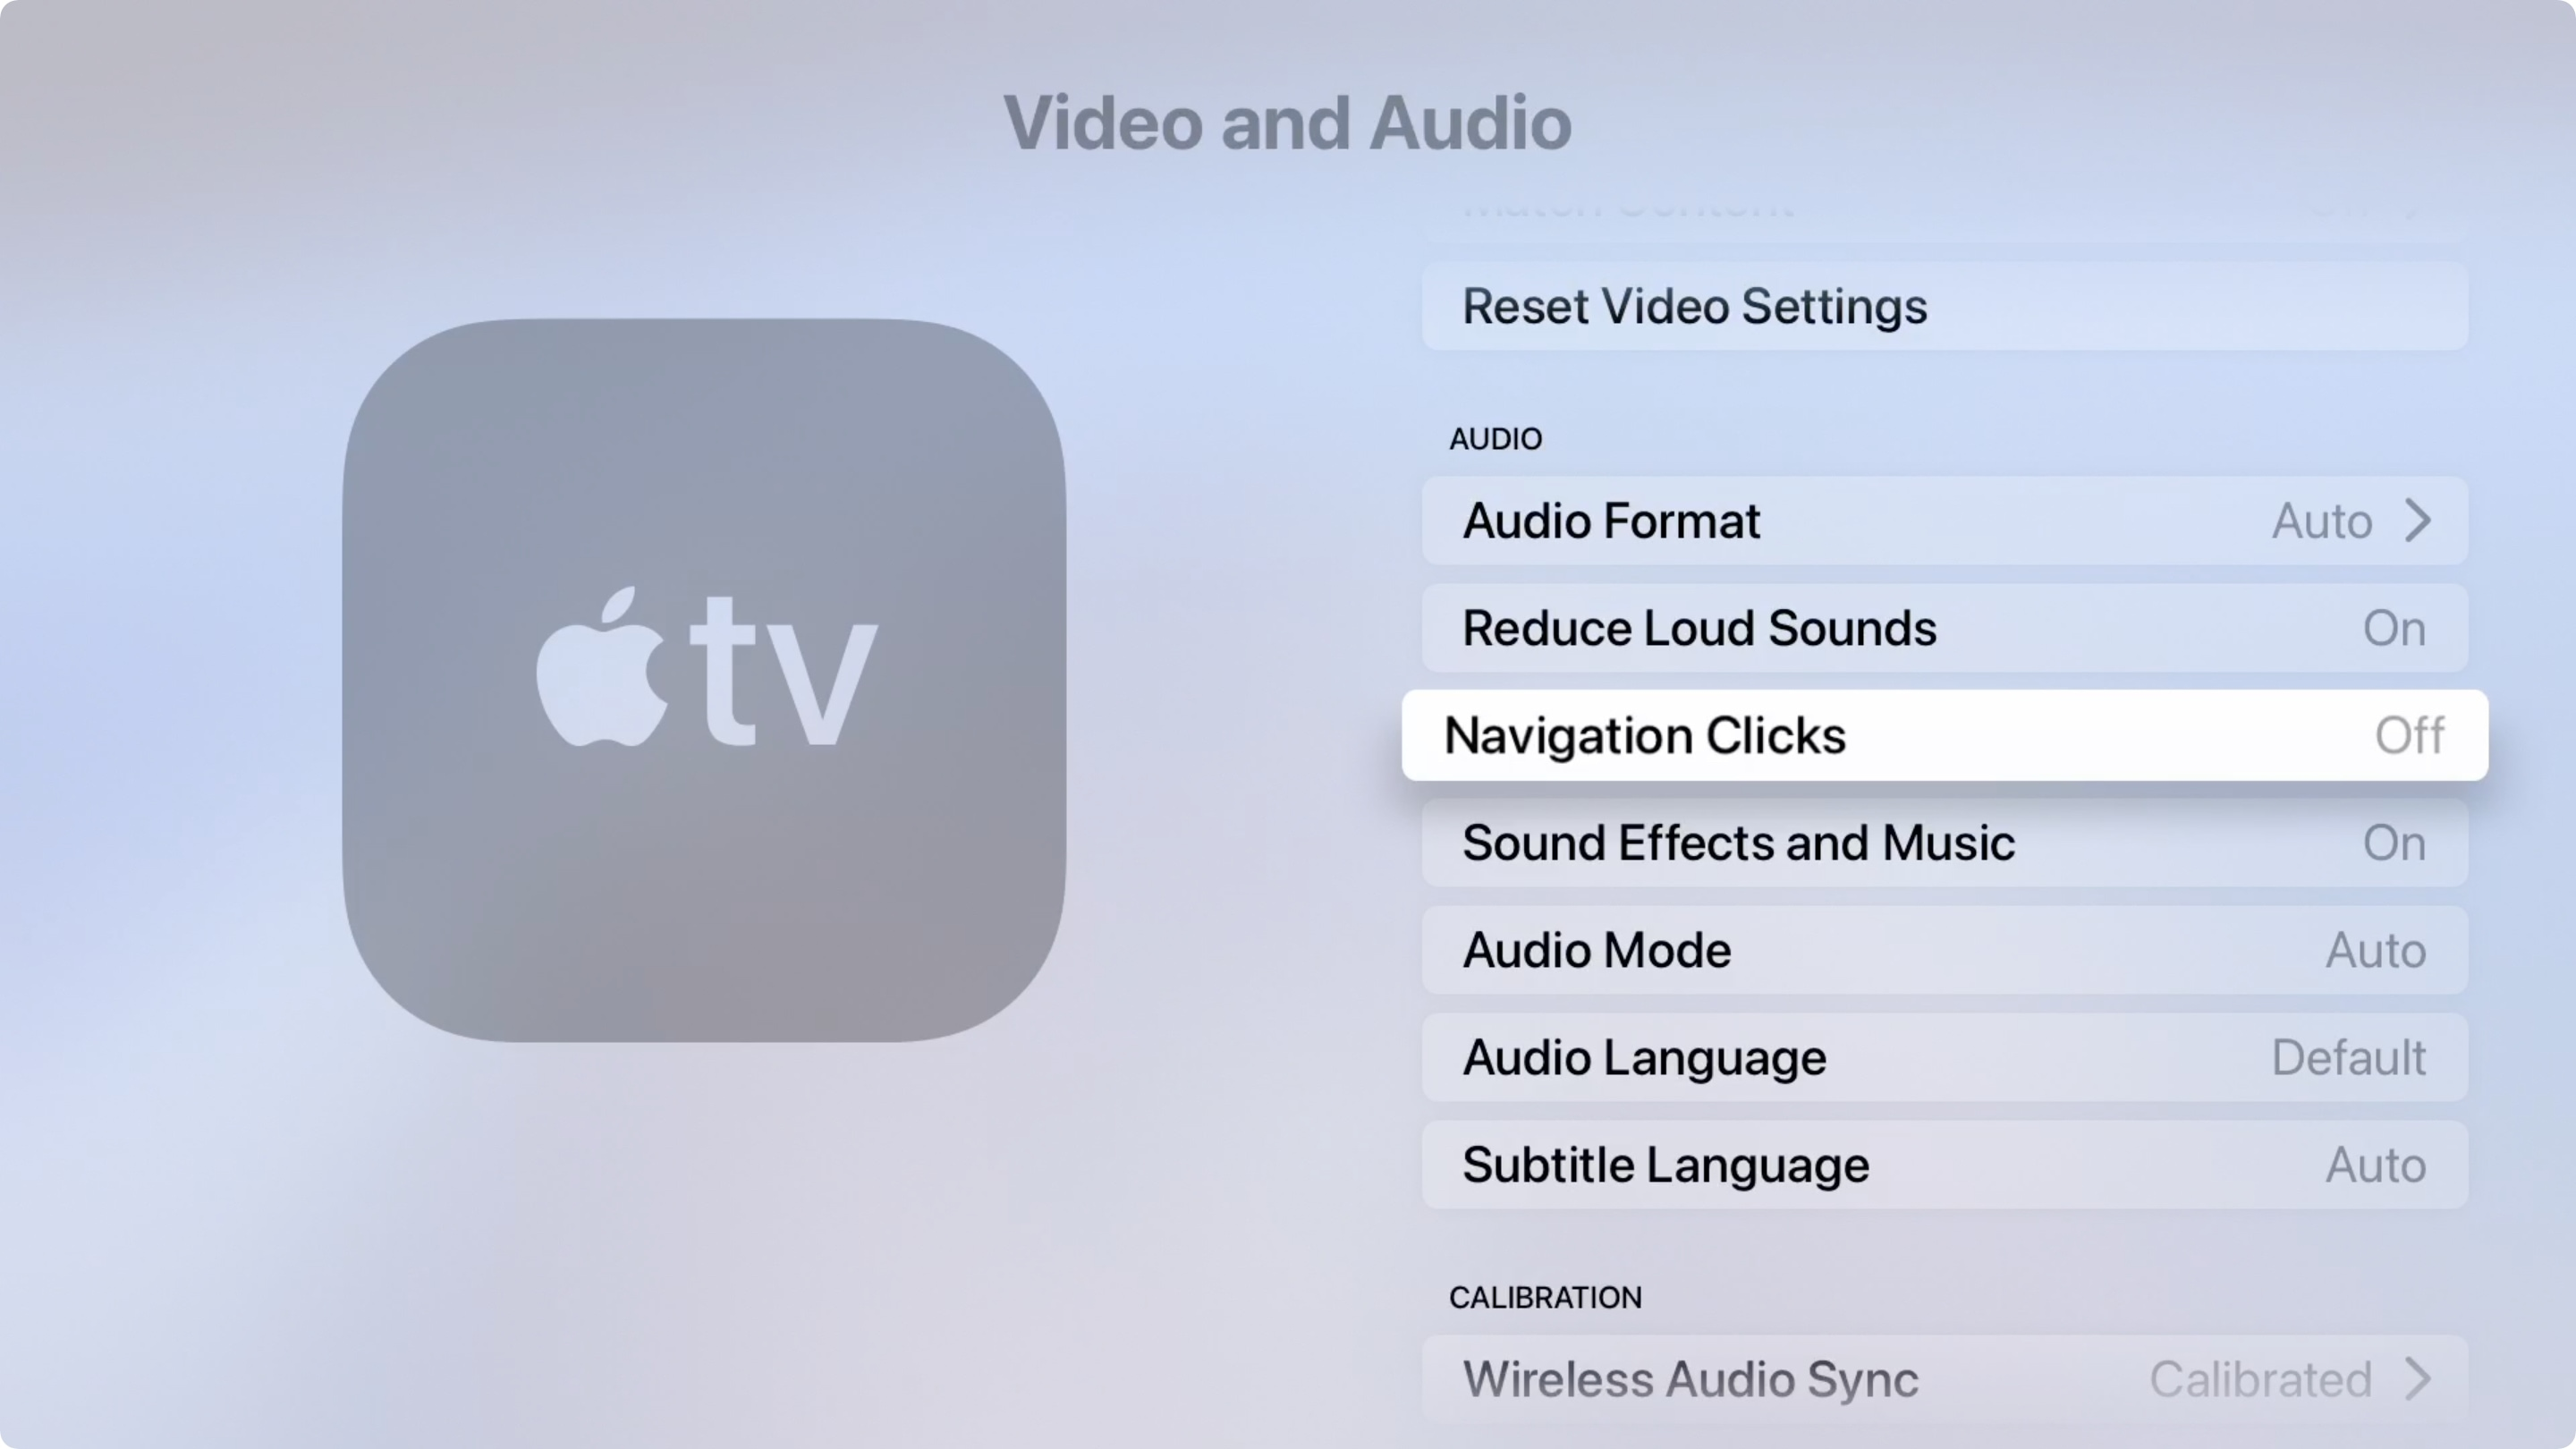 Apple TV, Video and Audio, Navigation Clicks Off